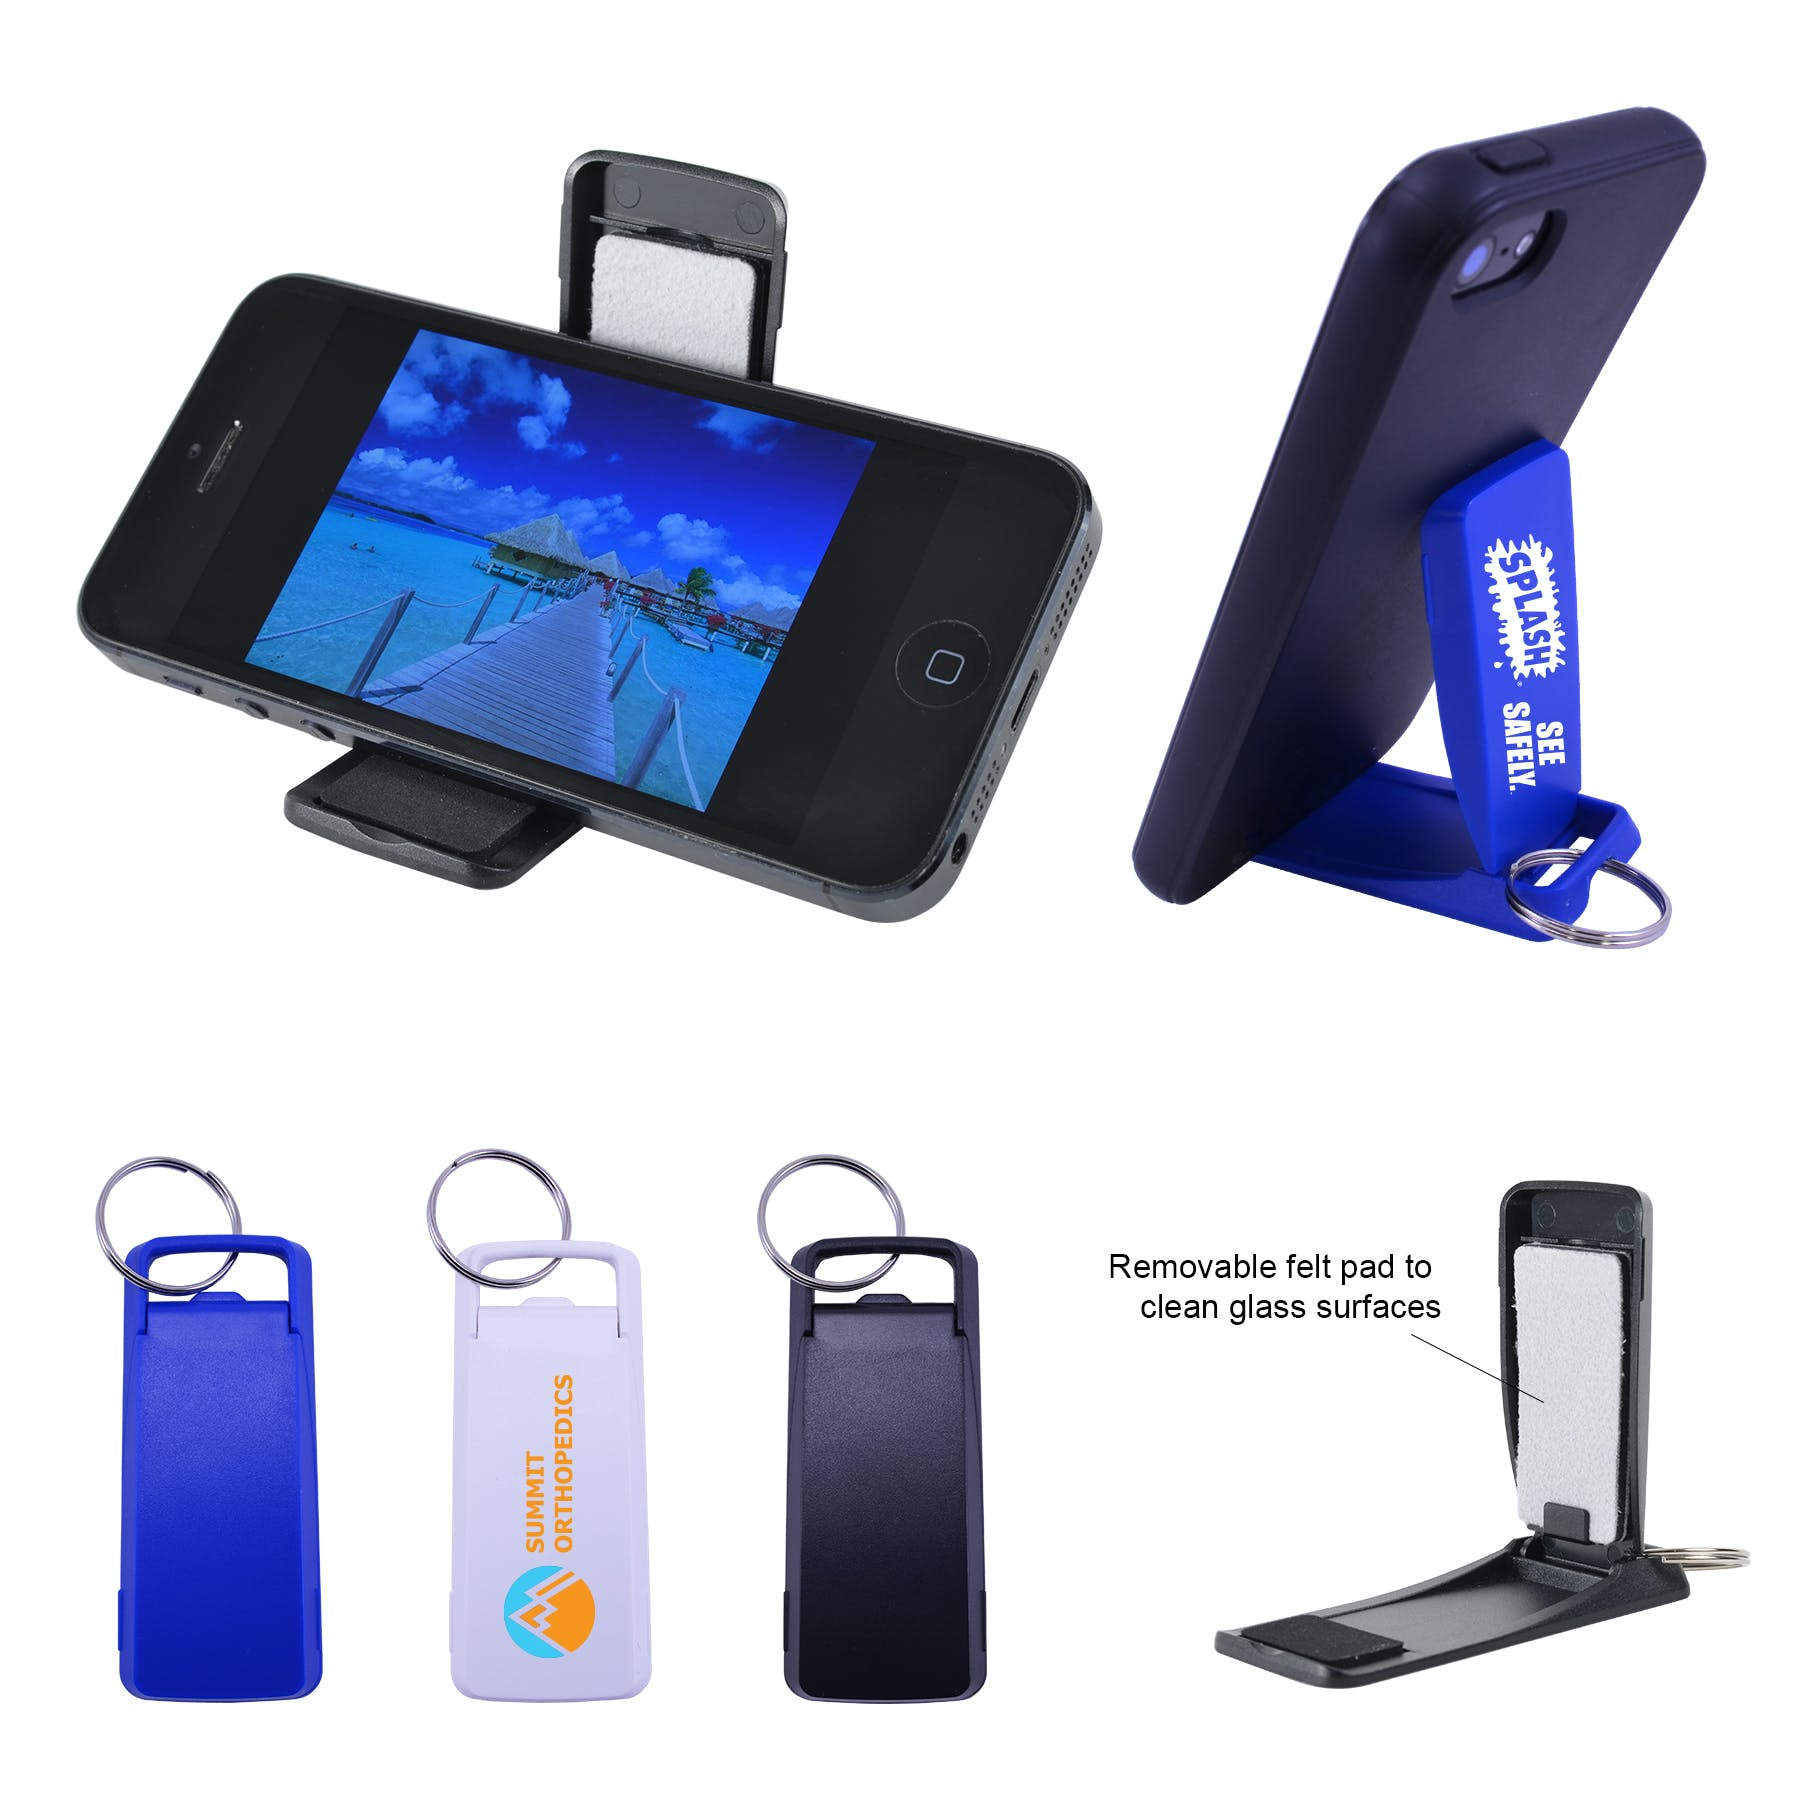 Cell Stand Key Chain (Item # SFJQL-JQATG) Promotional keychain sold by InkEasy